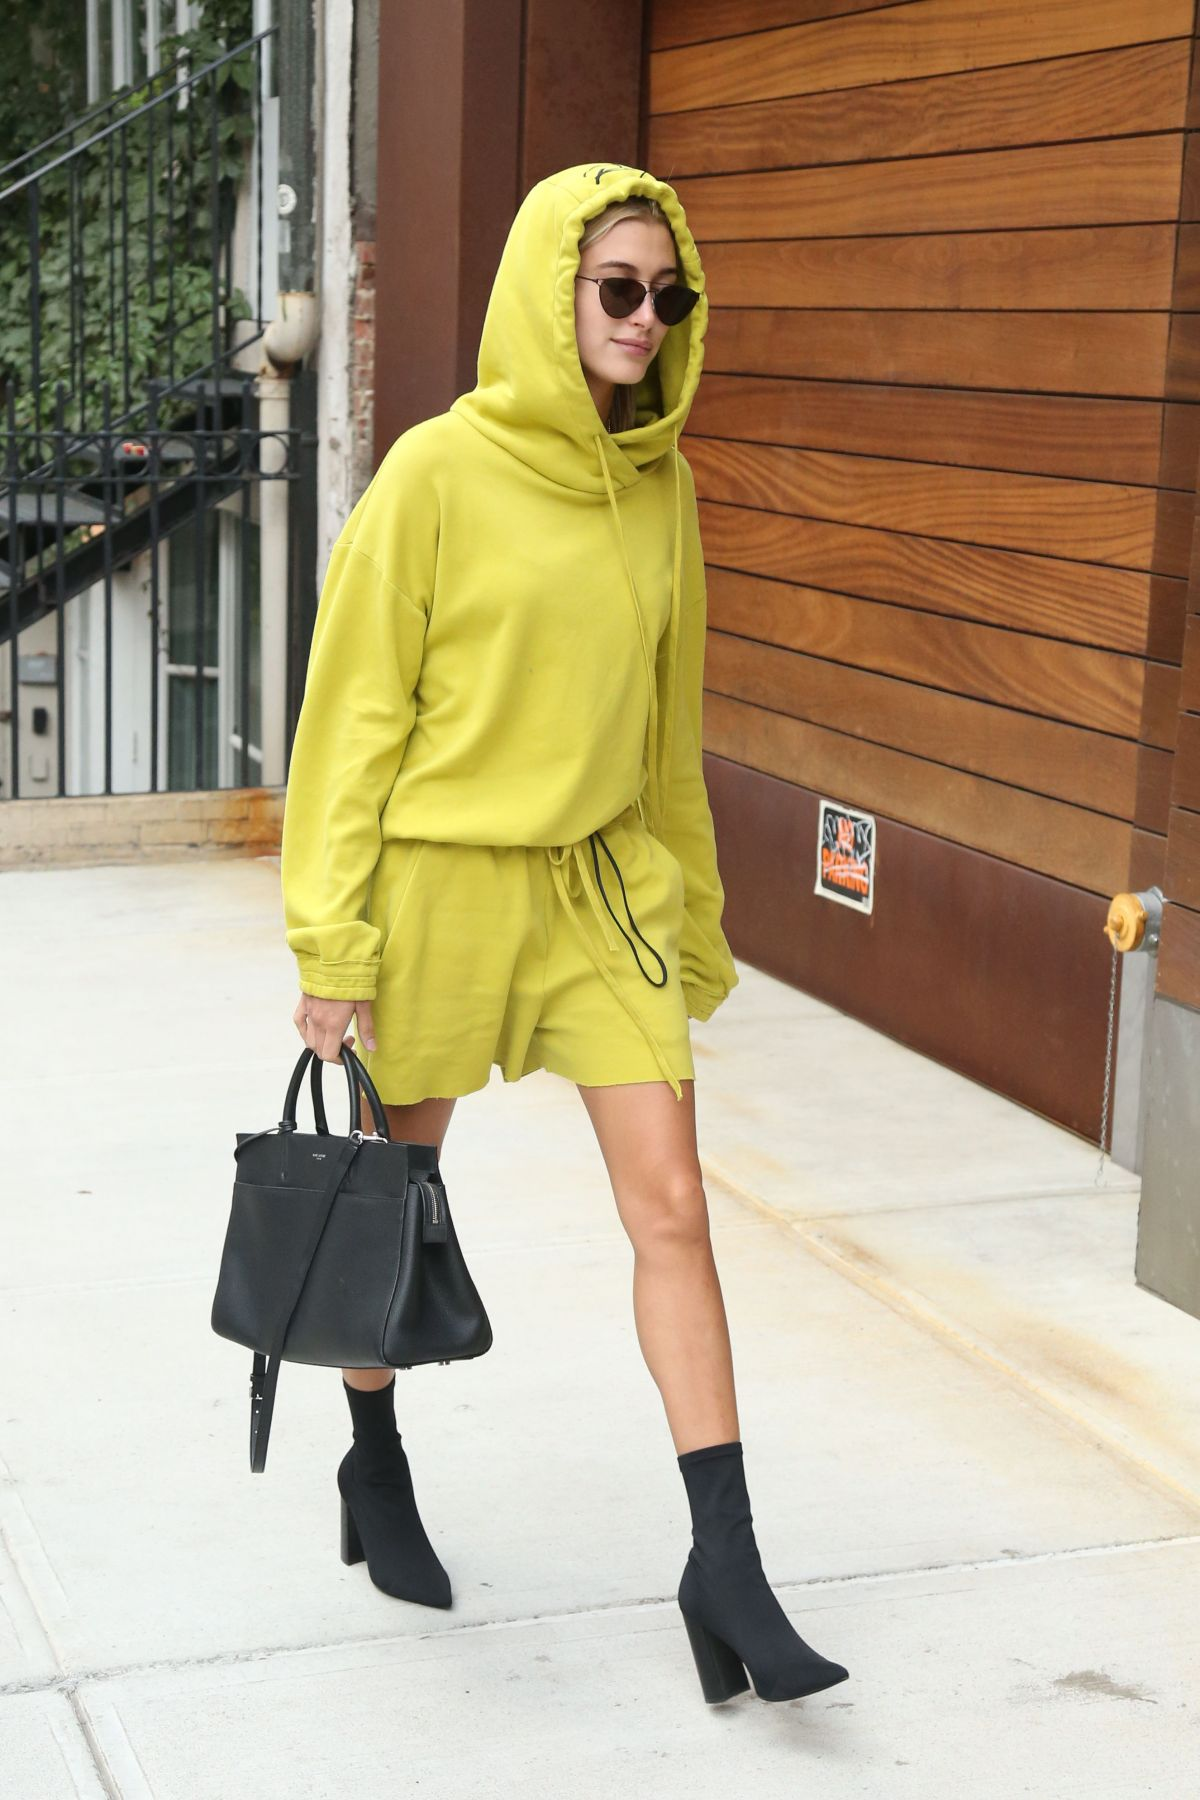 Hailey Baldwin Walking out and about in New York City